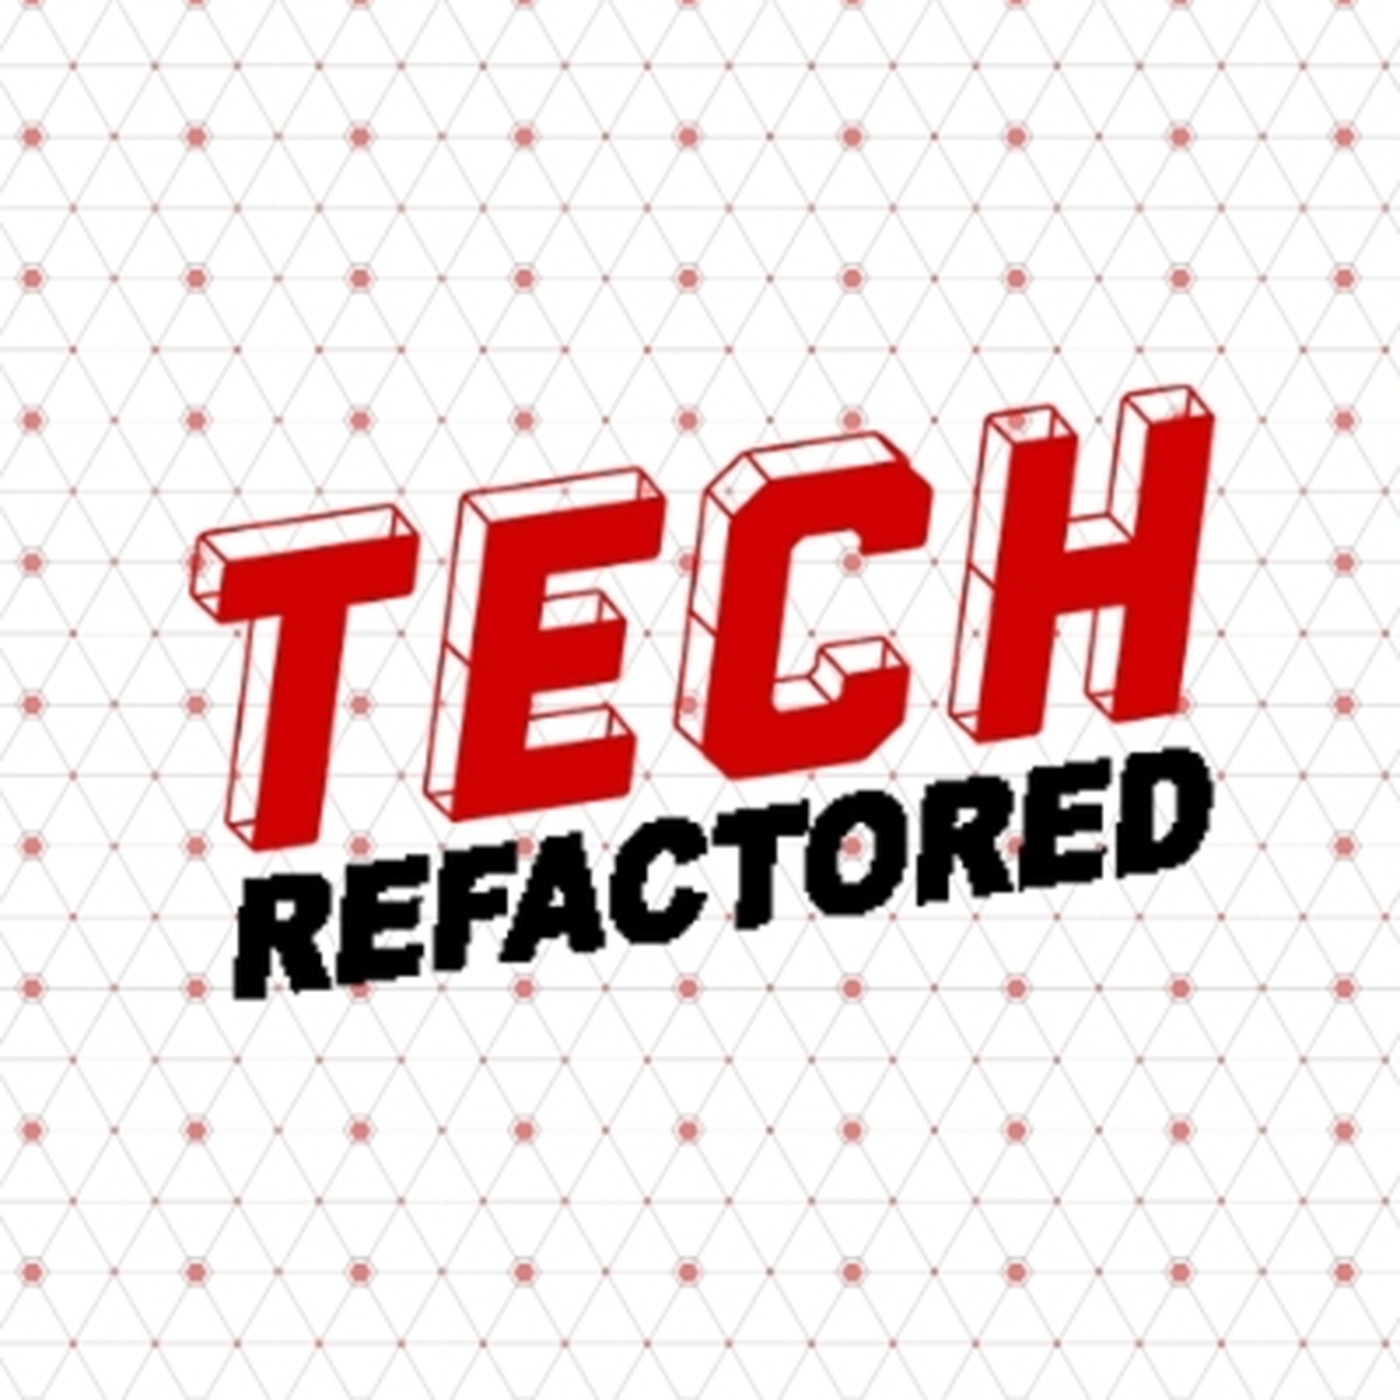 Tech Refactored Image